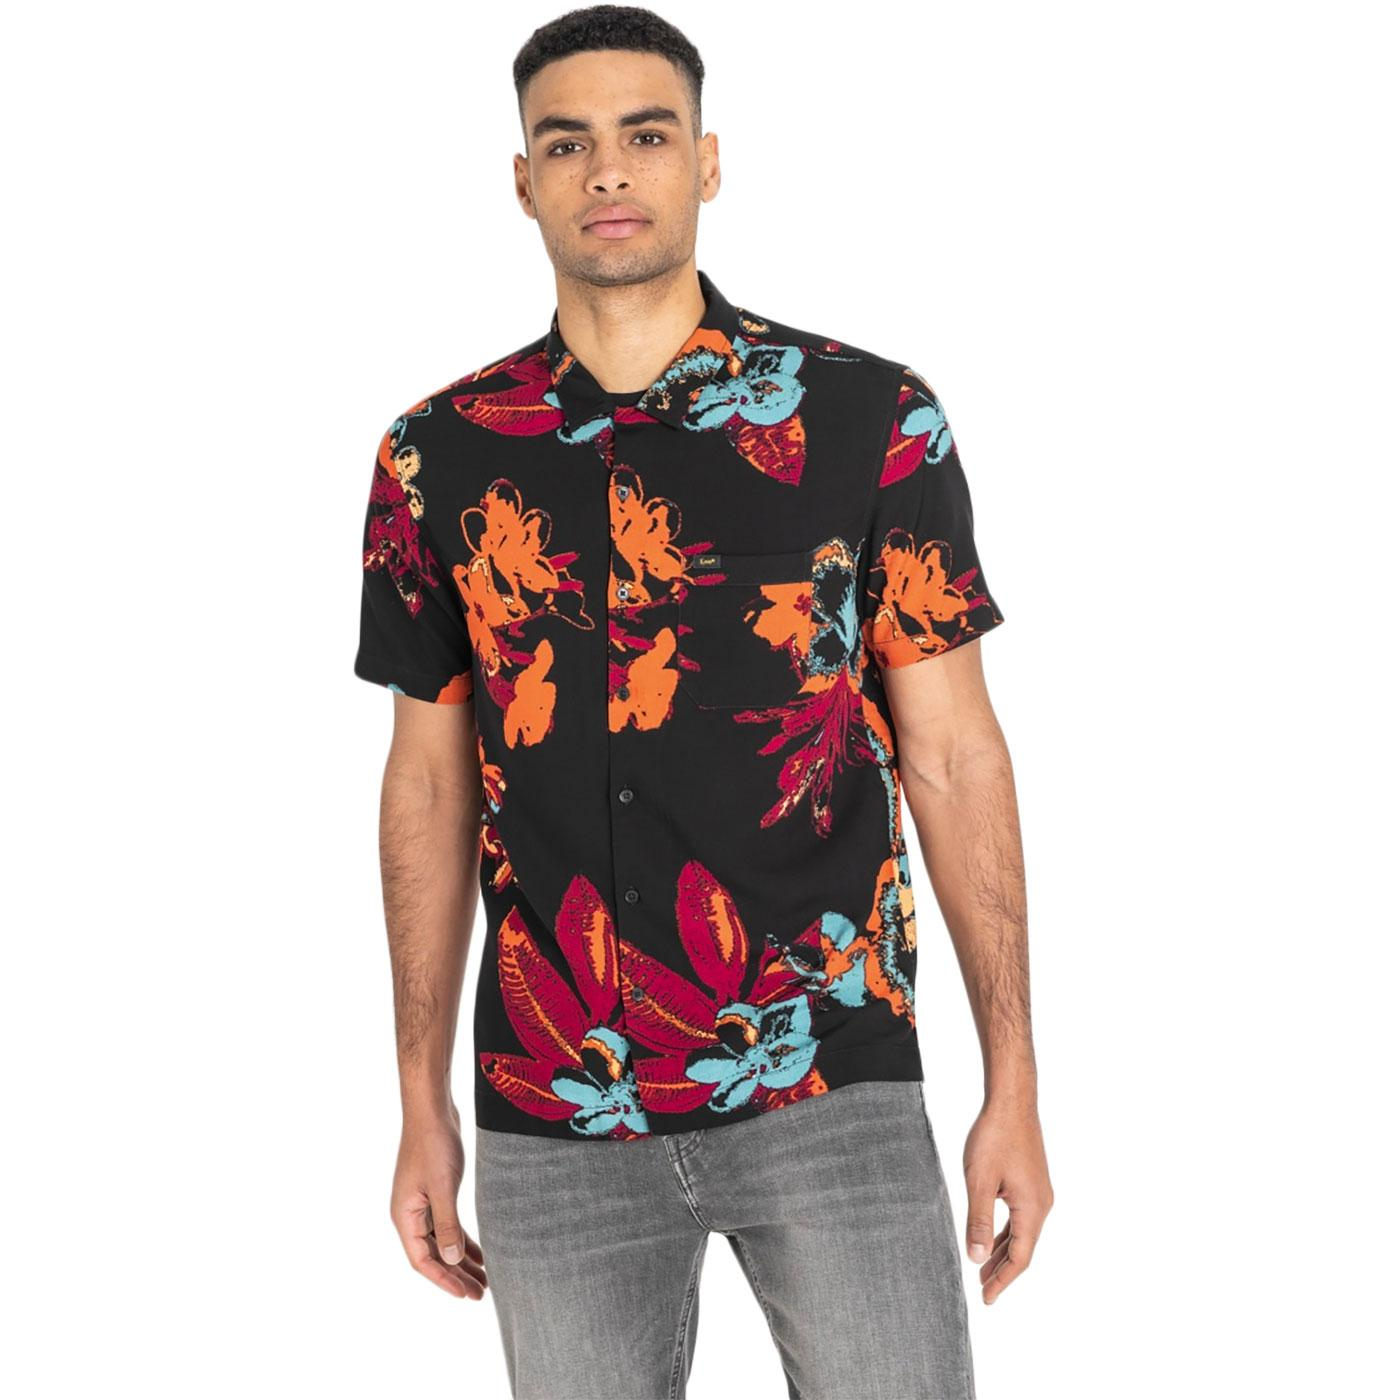 LEE Retro 1970s Bold Floral Hawaiian Shirt (Black)